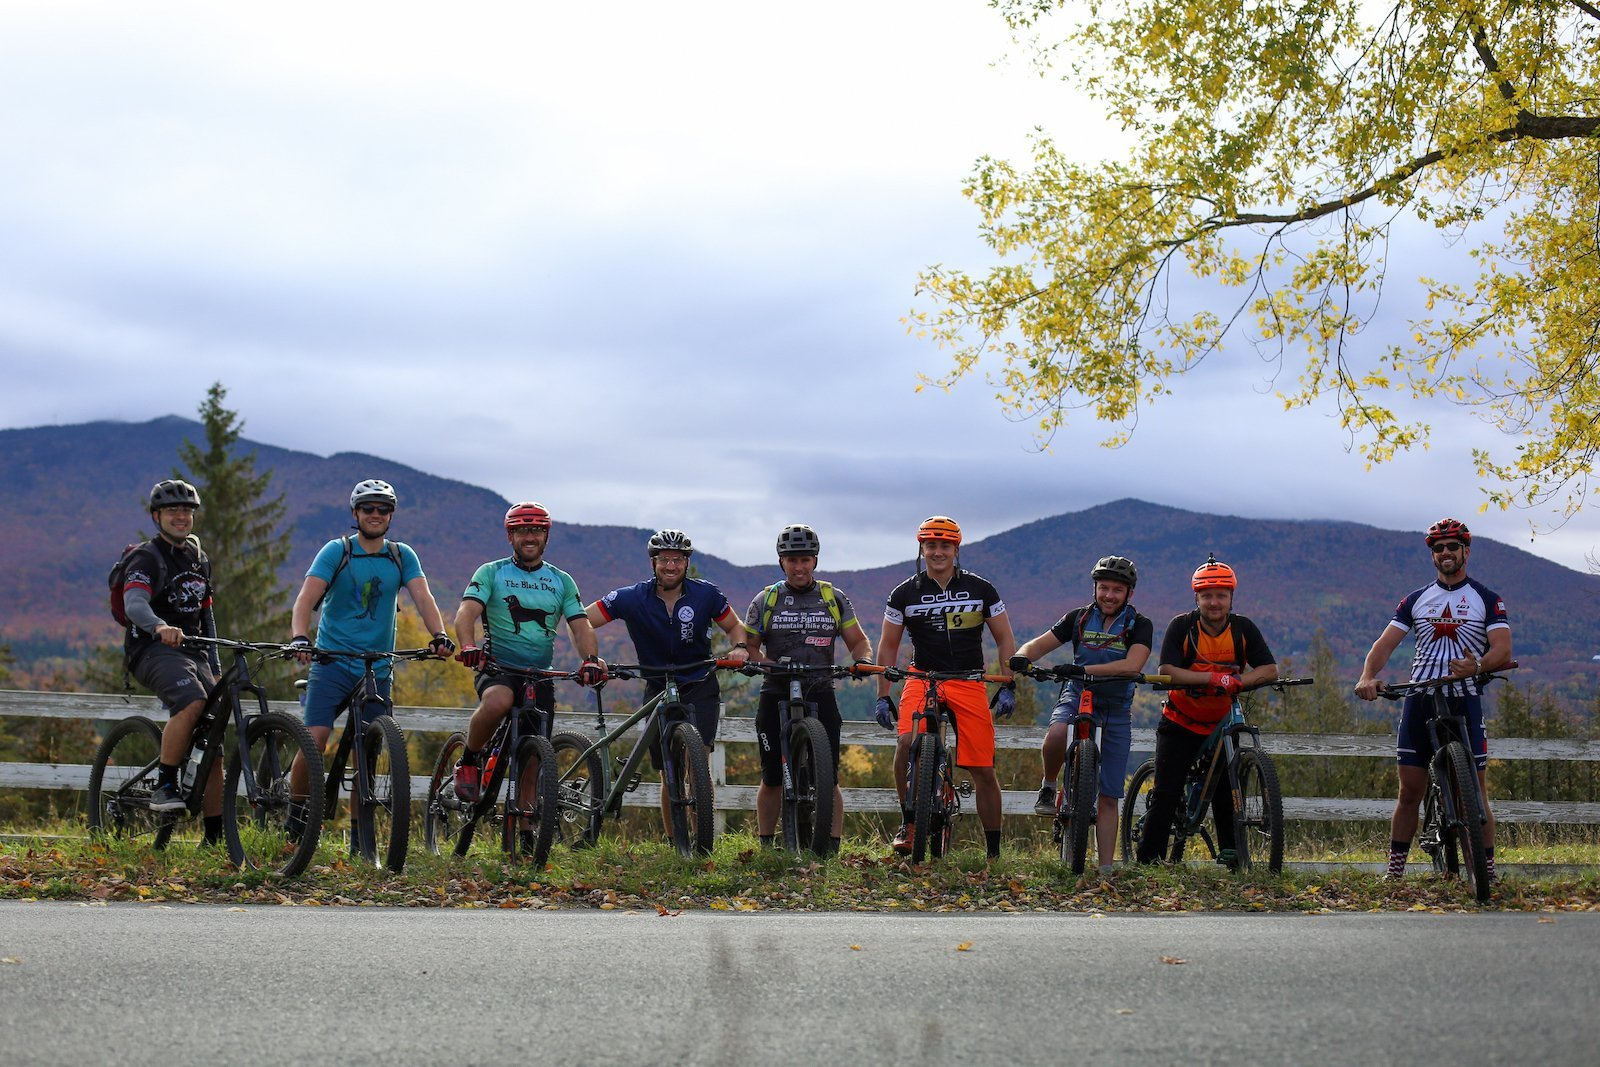 Mt. Biking Kingdom Trails, VT | Pure Adirondacks